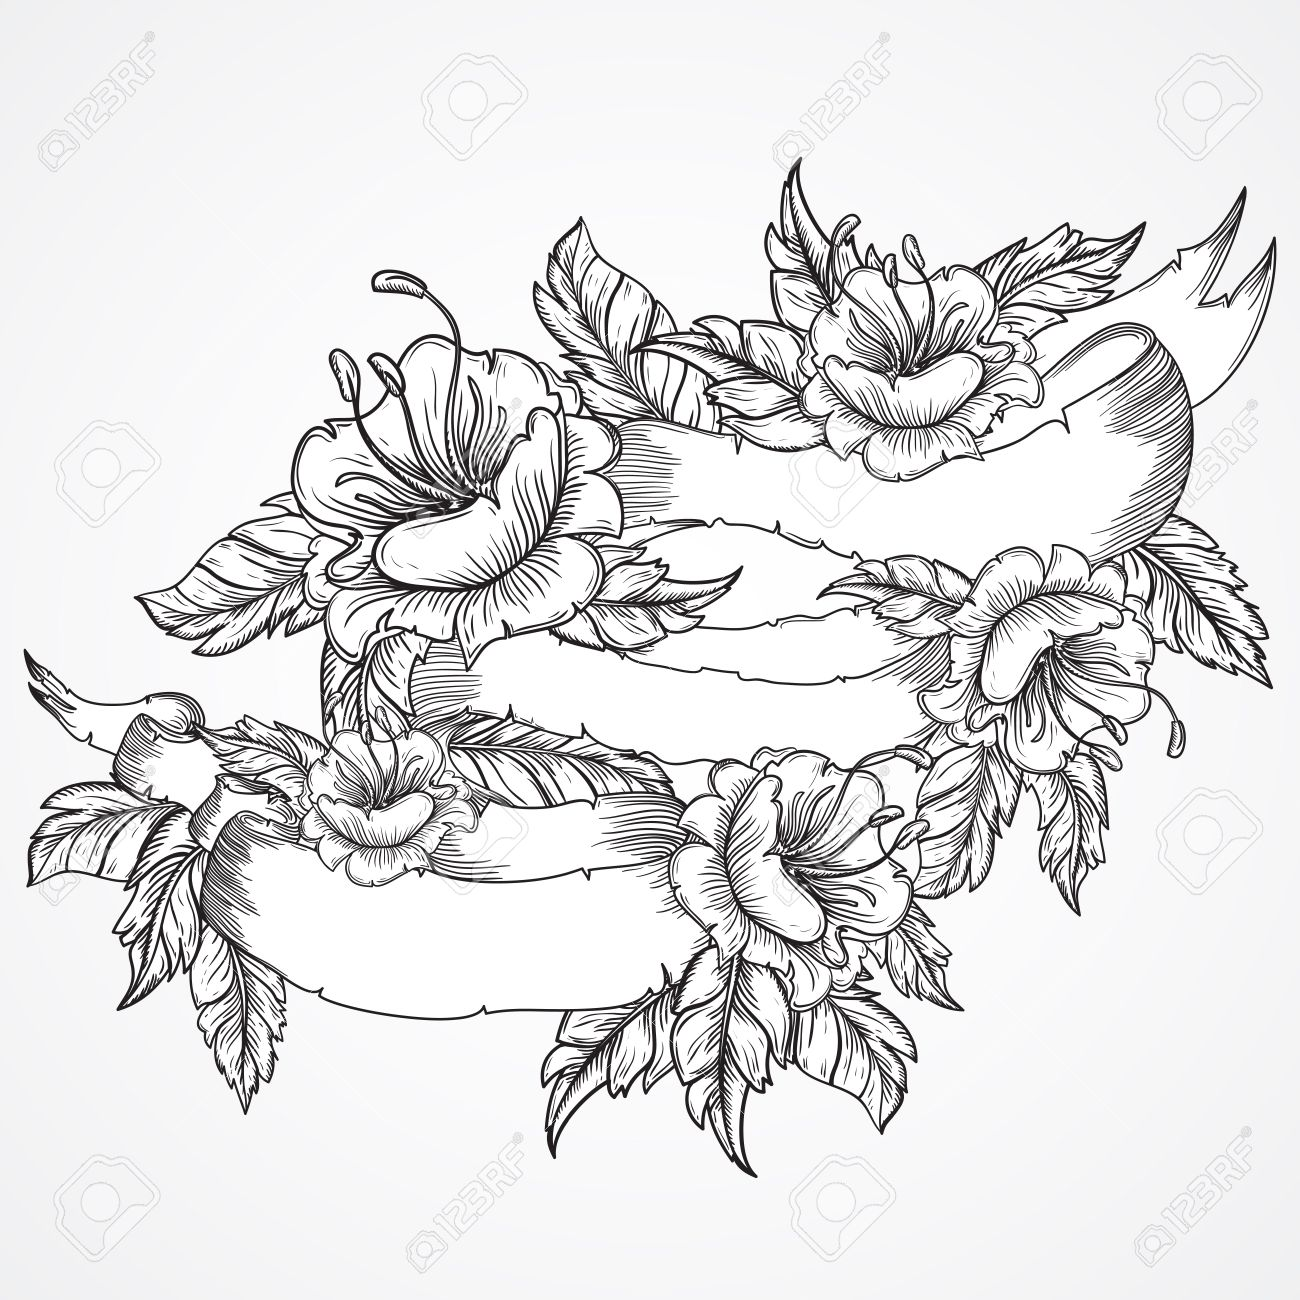 Vintage Floral Highly Detailed Hand Drawn Bouquet Of Flowers Royalty Free Cliparts Vectors And Stock Illustration Image 44082936